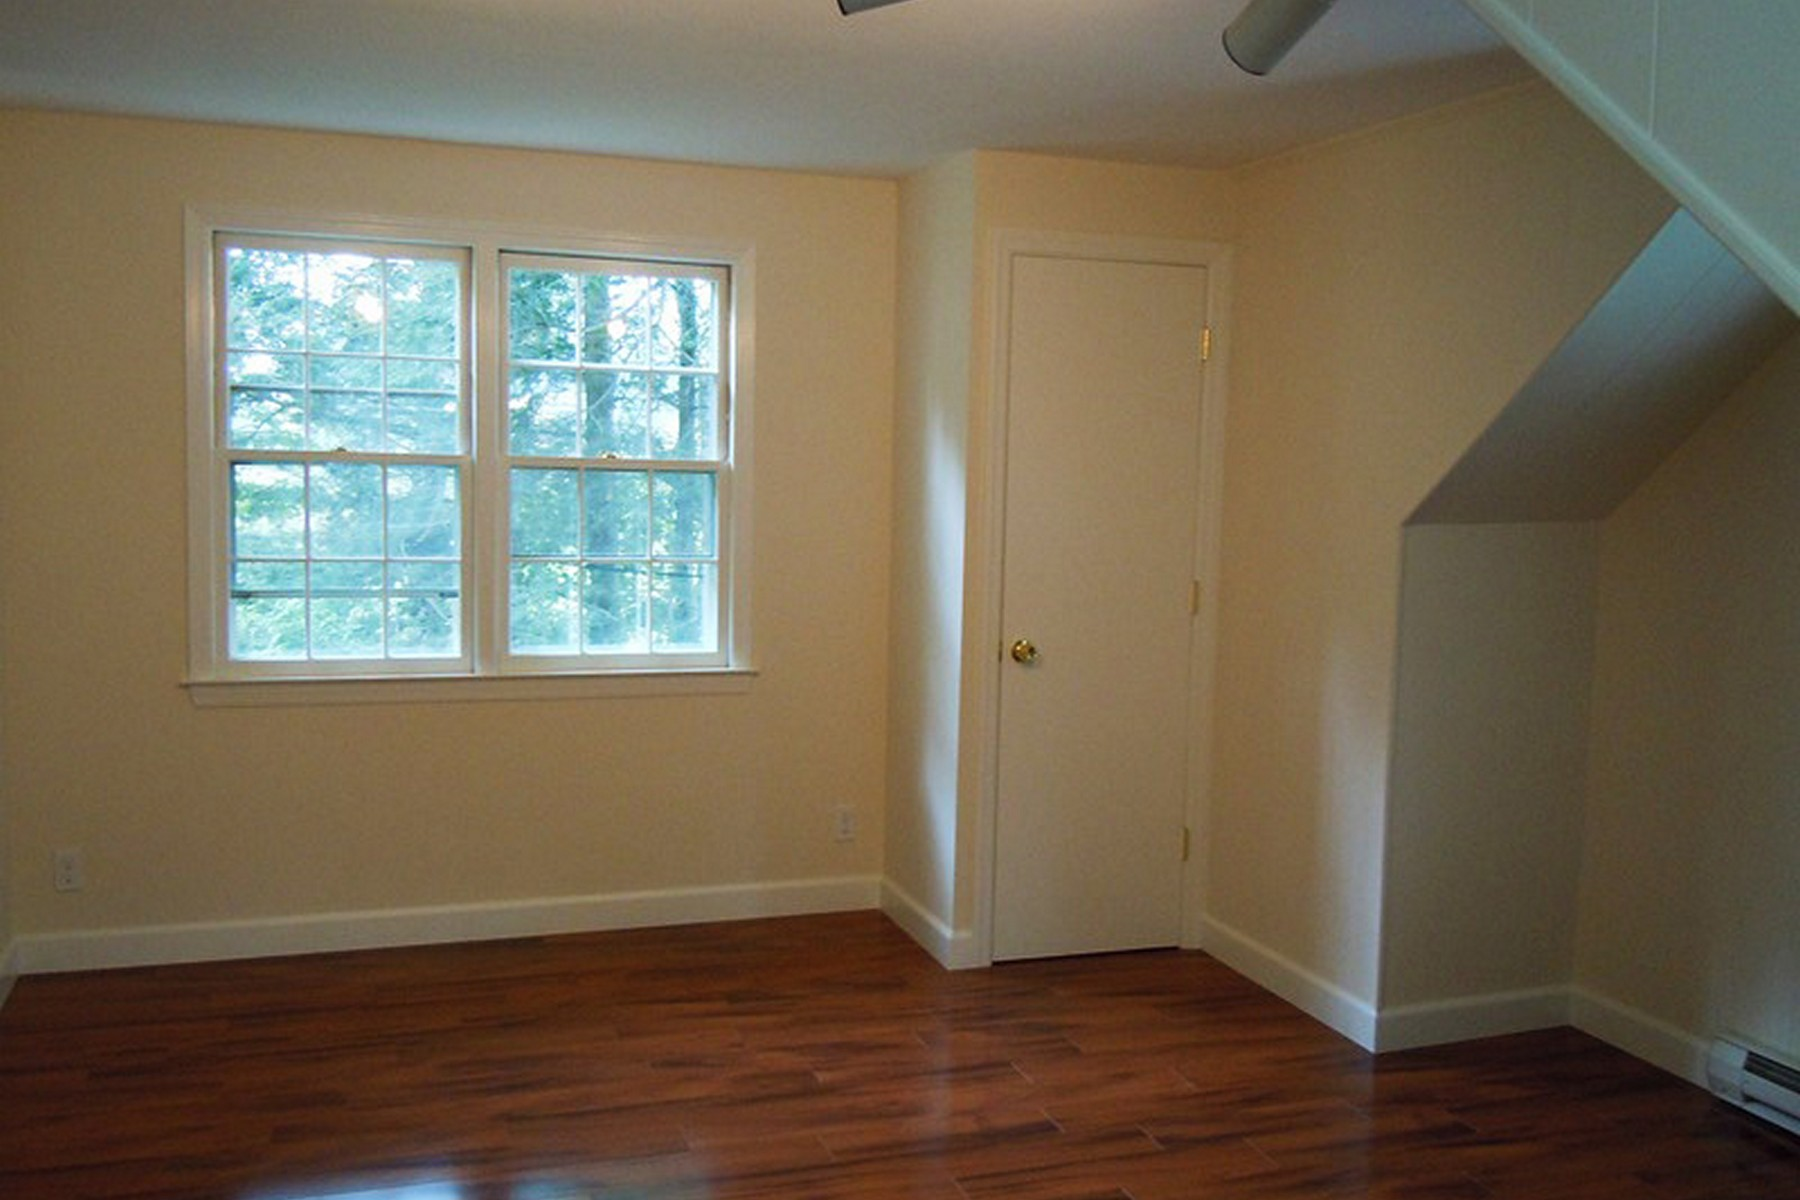 Additional photo for property listing at Carriage House Rental 9-a Oregon Rd Unit A Bedford Corners, New York 10549 United States